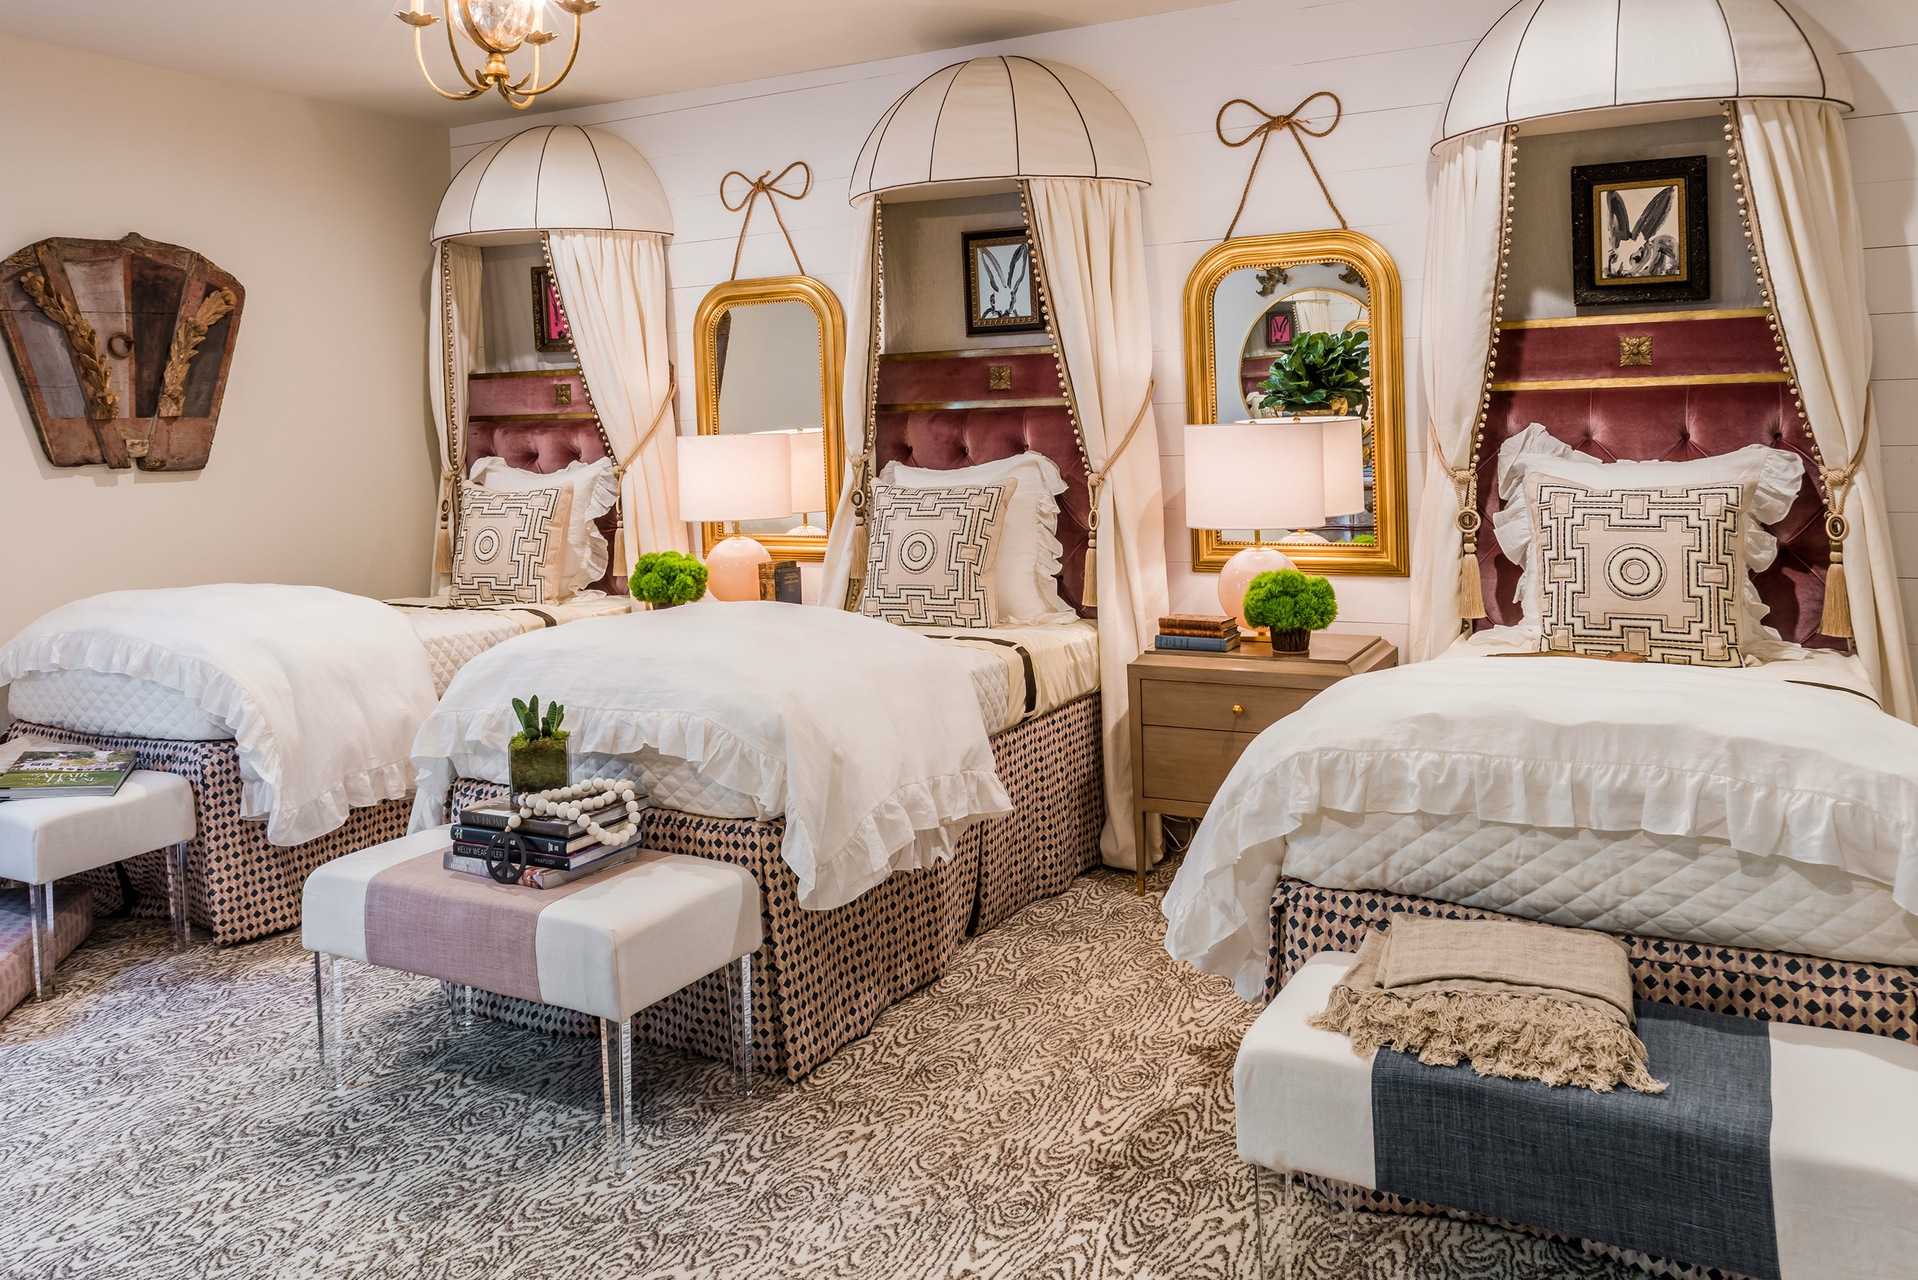 Designer Rugs — A wood grain pattern rug in the bedroom by Dodson Interiors in the 2016 Hamptons Designer Showhouse.